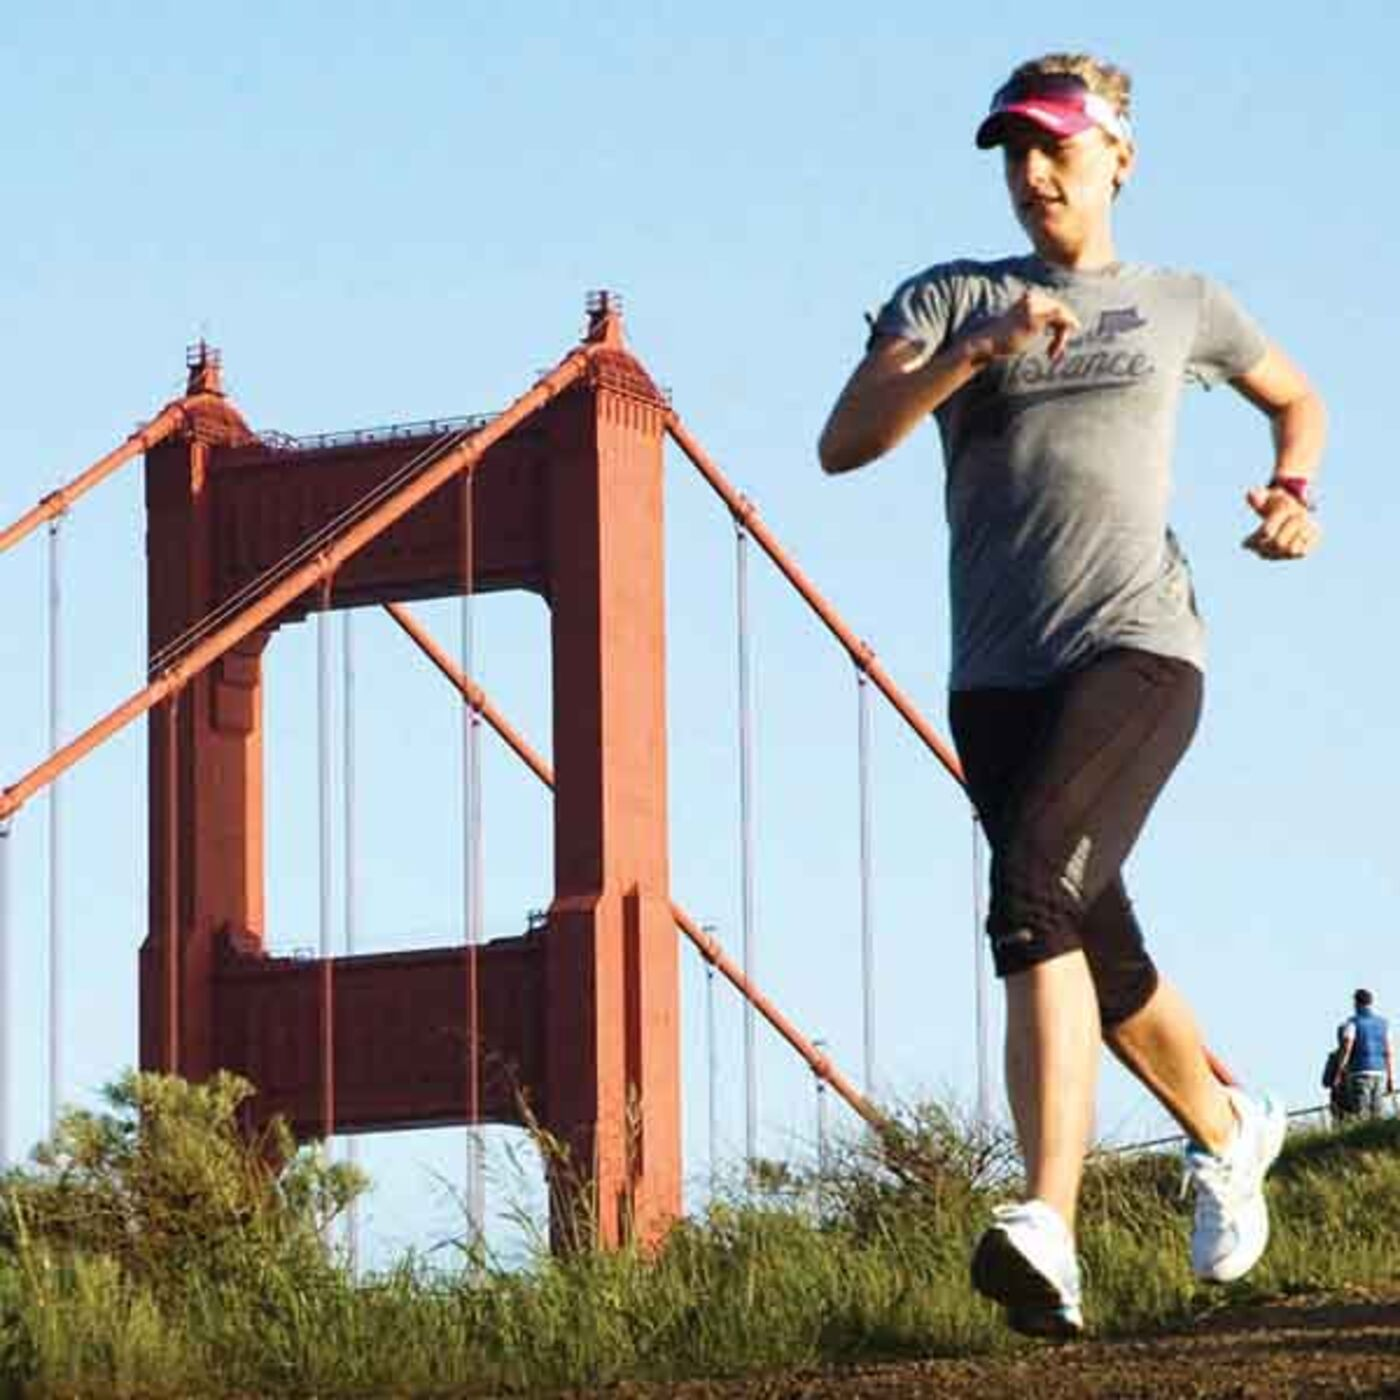 Ep 252 - Running across the US for MS with Ashley Schneider